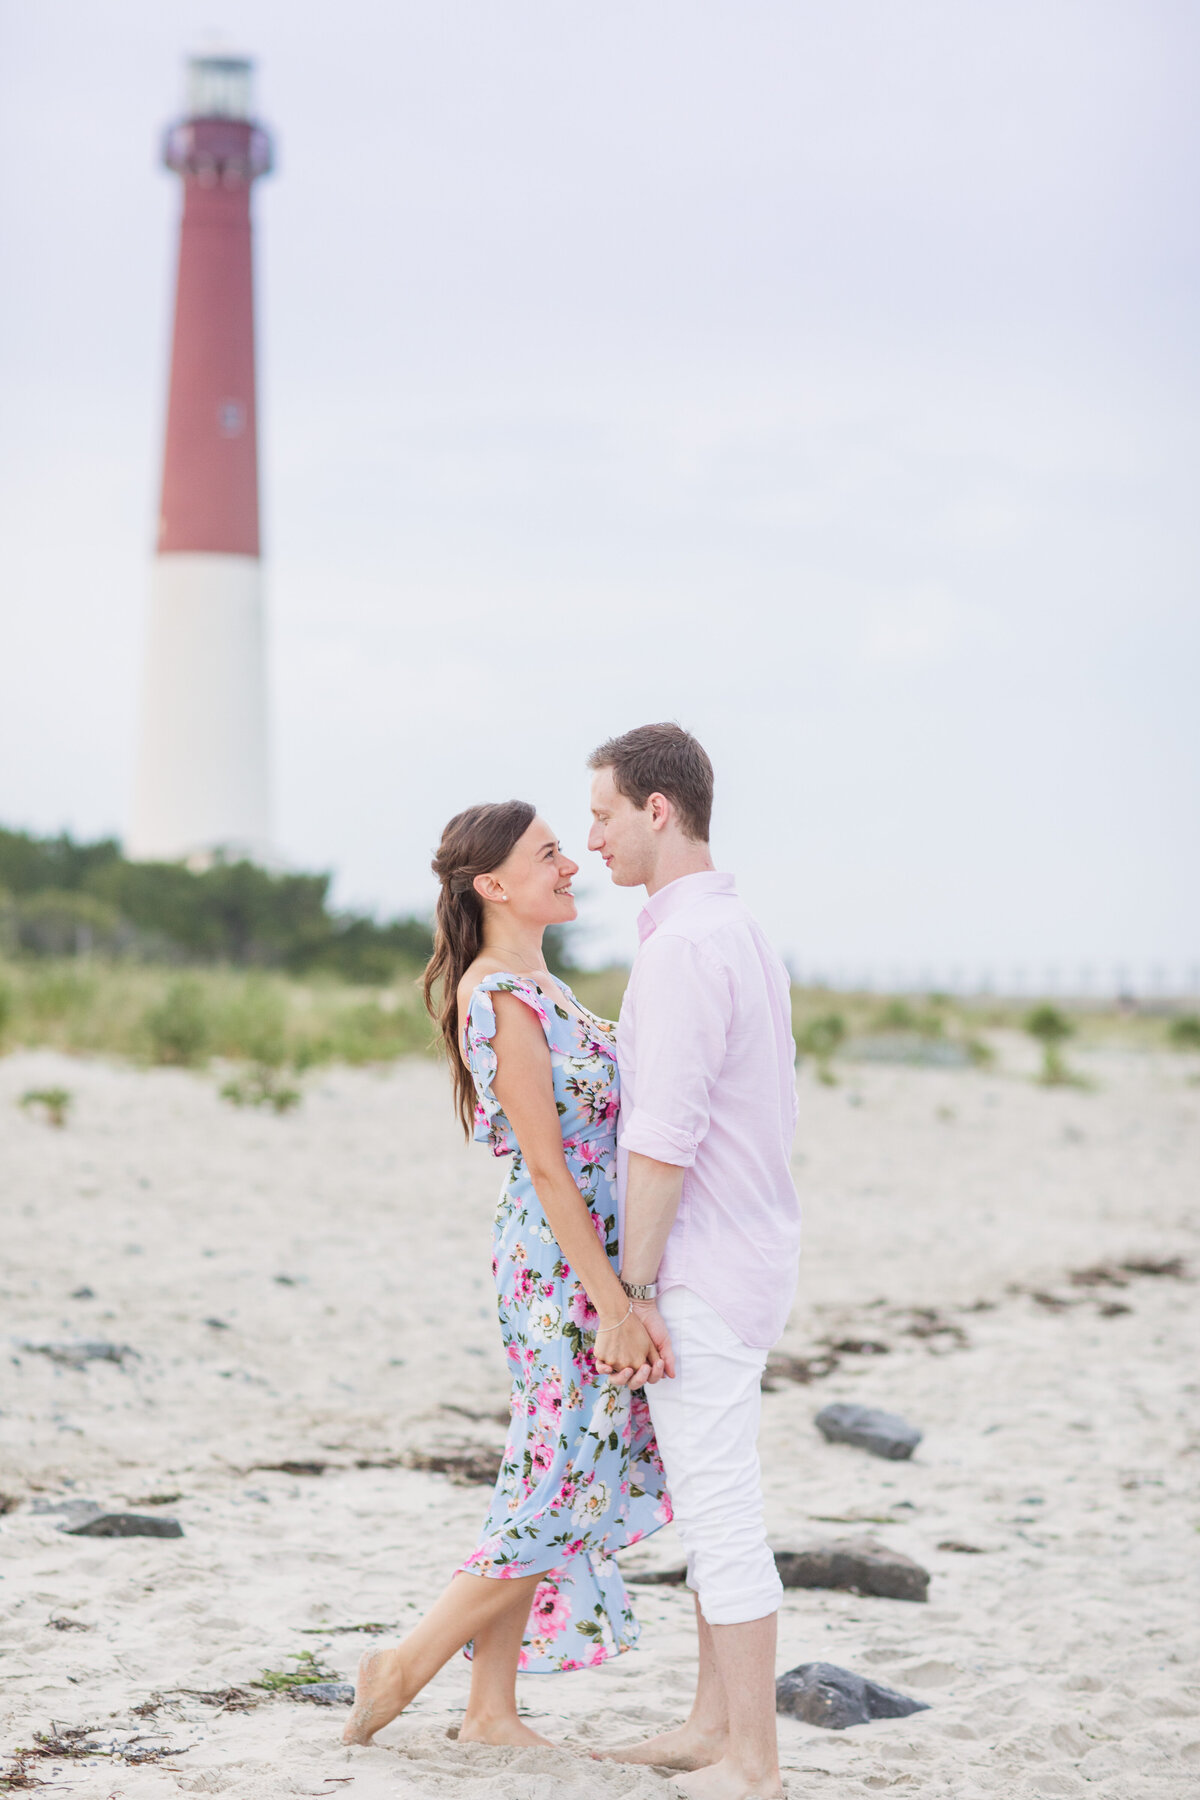 Barnegat_Lighthouse_State_Park_Engagement_Session_at_Sunset_in_July-82